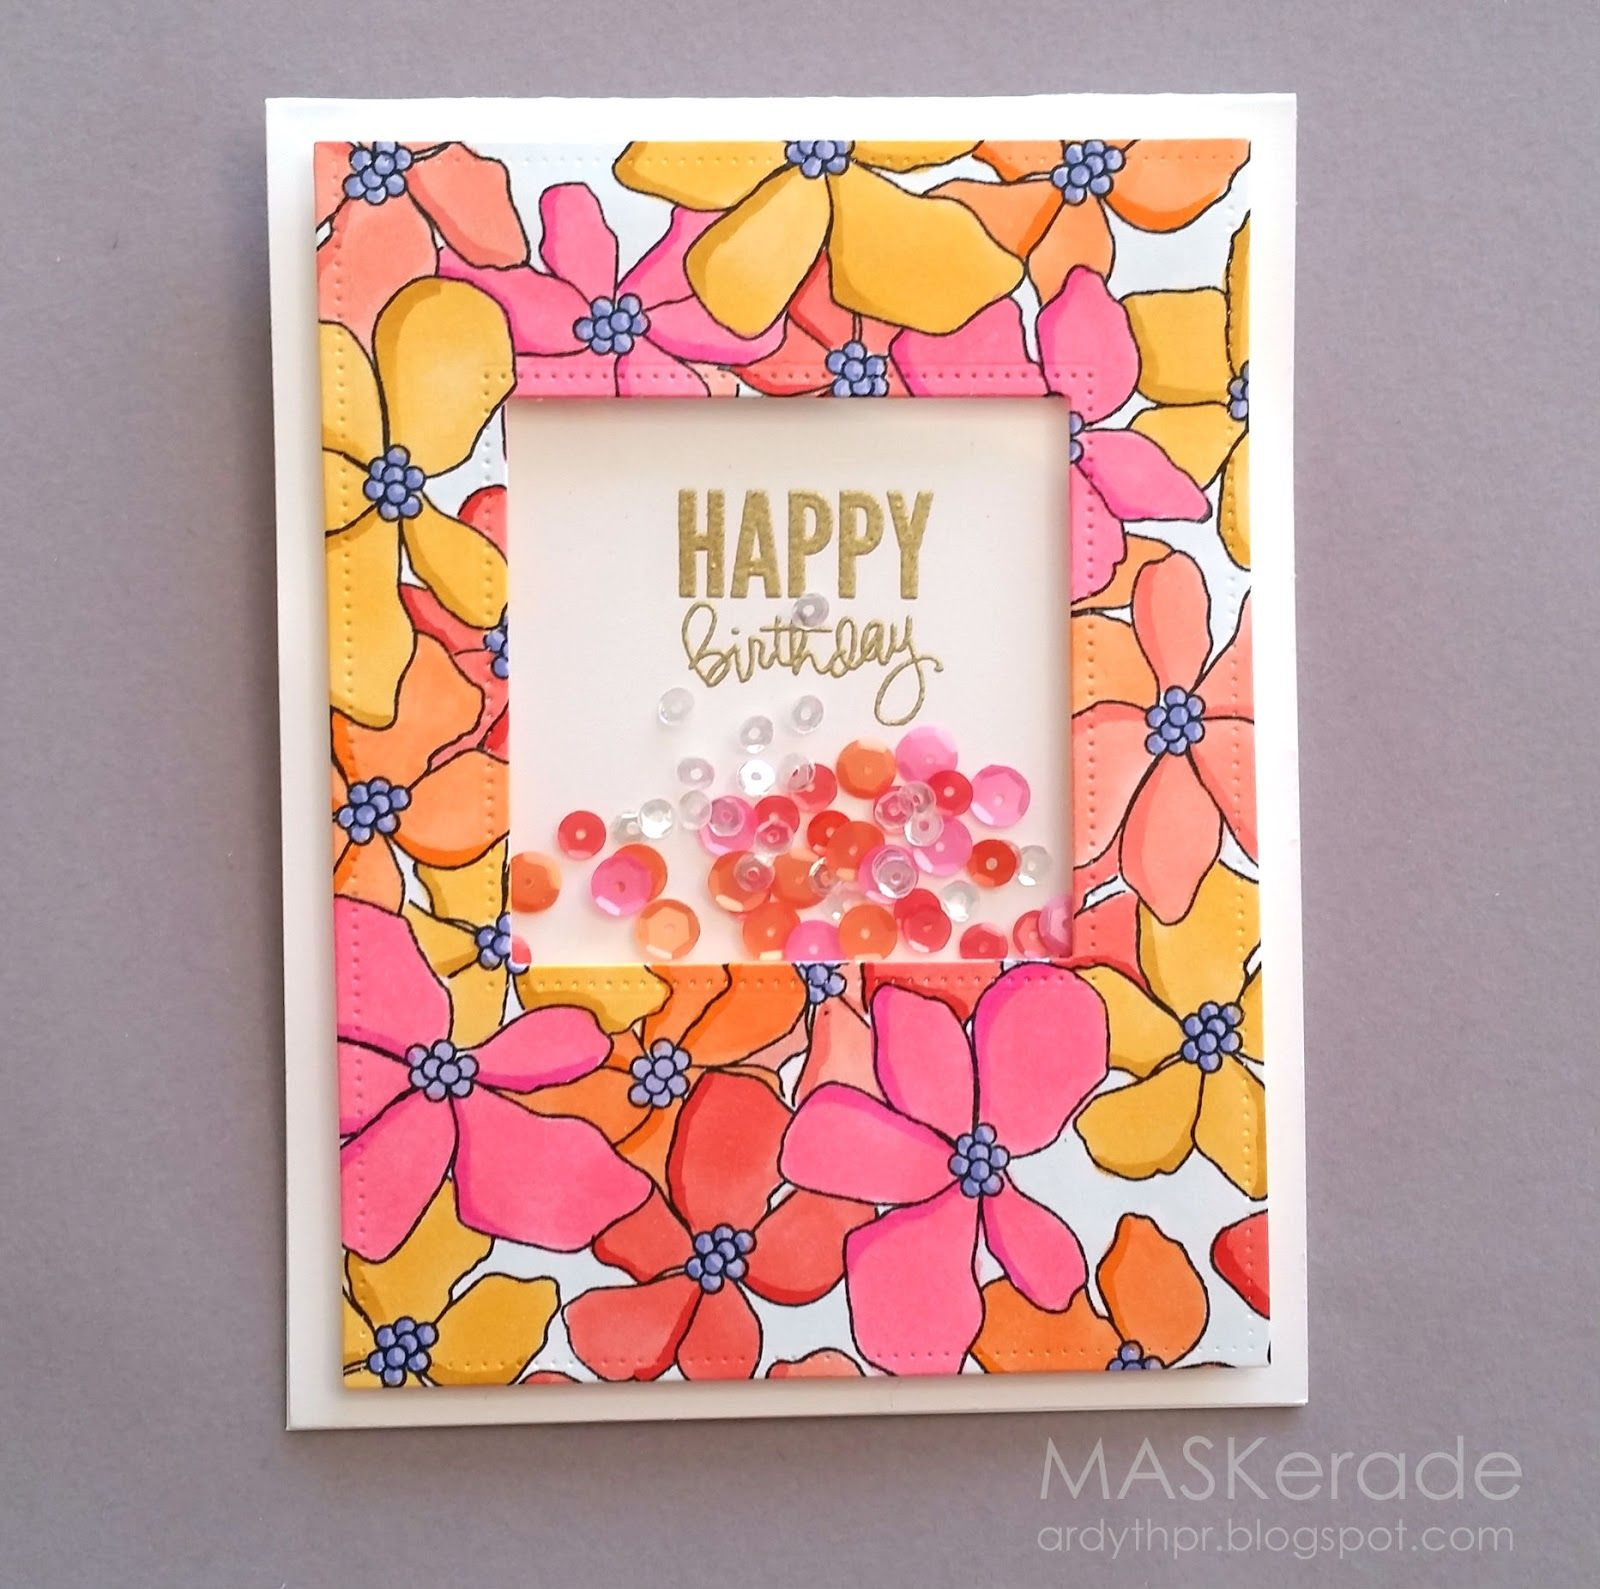 Once again, I spent some time making more than one card with a stamp set - this time Artful Flowers  from Simon Says Stamp. I enjoyed ...